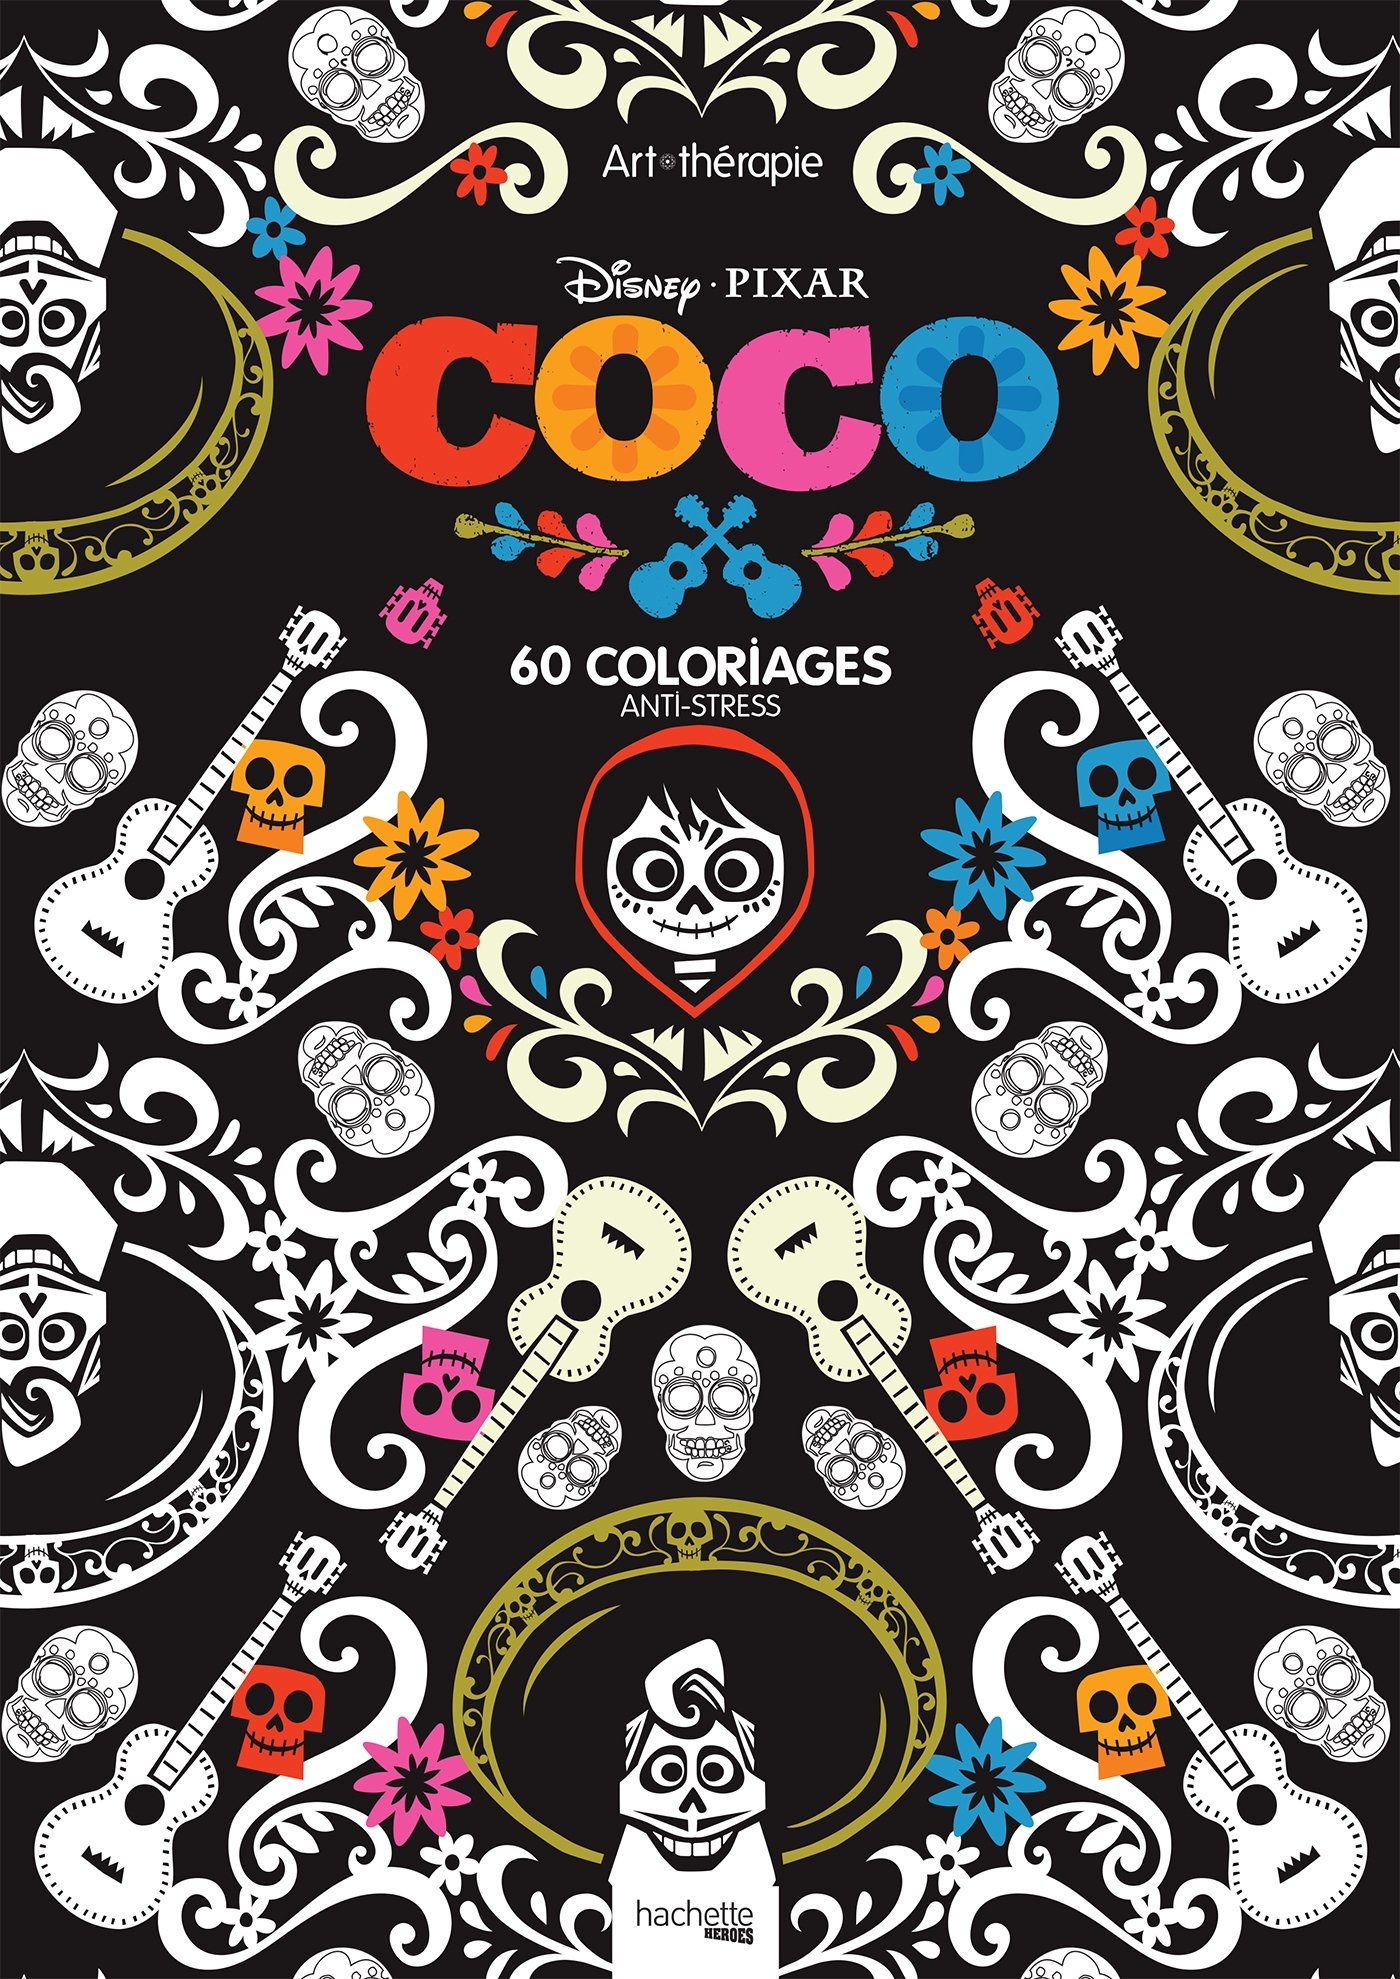 Bloc Disney Coco 60 Coloriages Anti Stress Heroes Amazon Co Uk